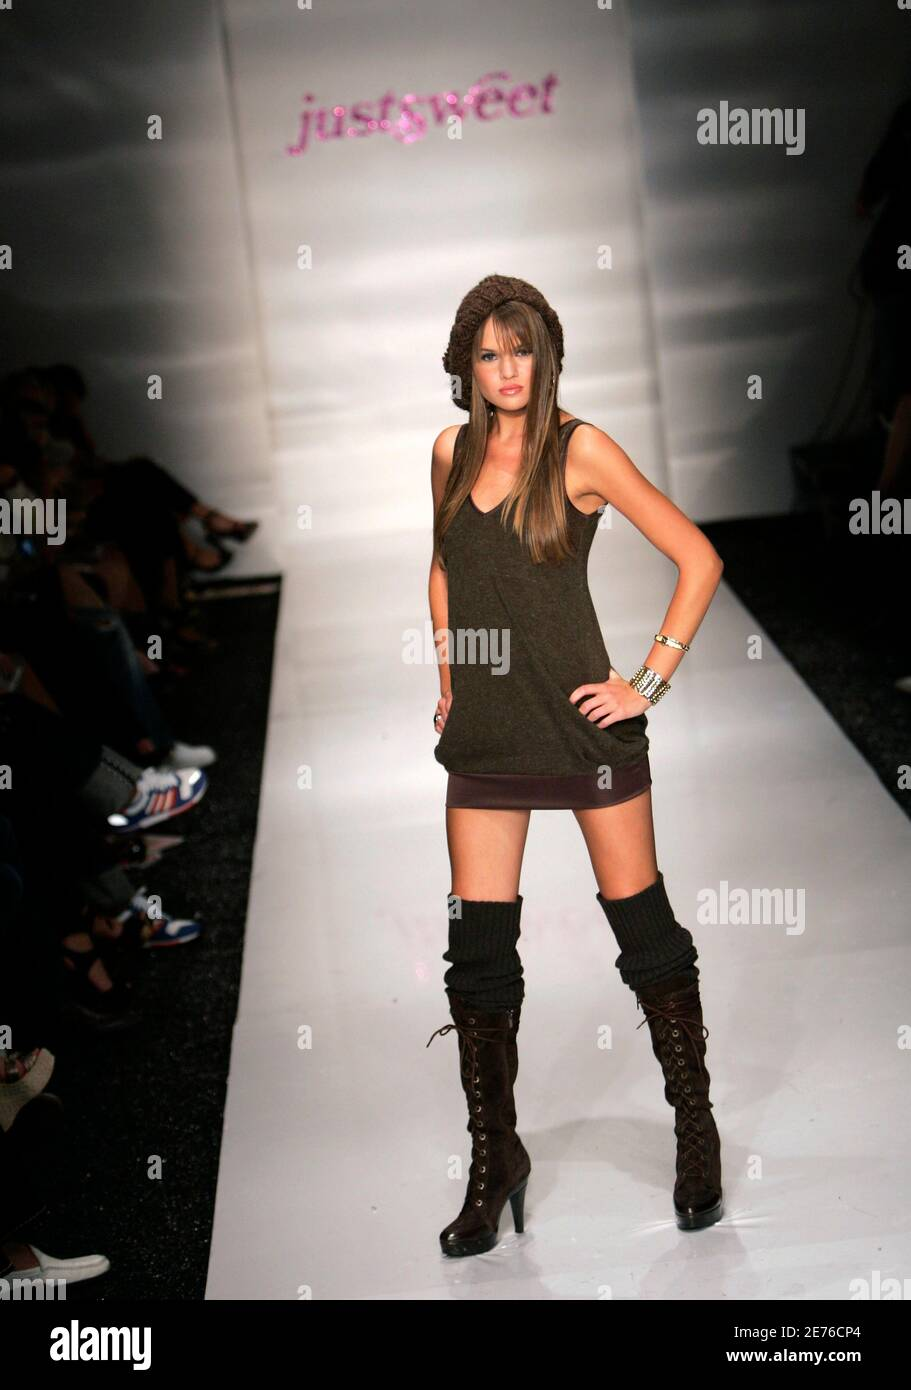 A model presents a creation from the Justsweet collection by Jennifer Lopez during Fashion Week in Miami Beach, Florida, March 23, 2006. Photo taken March 23, 2007.   REUTERS/Carlos Barria (UNITED STATES) Stock Photo